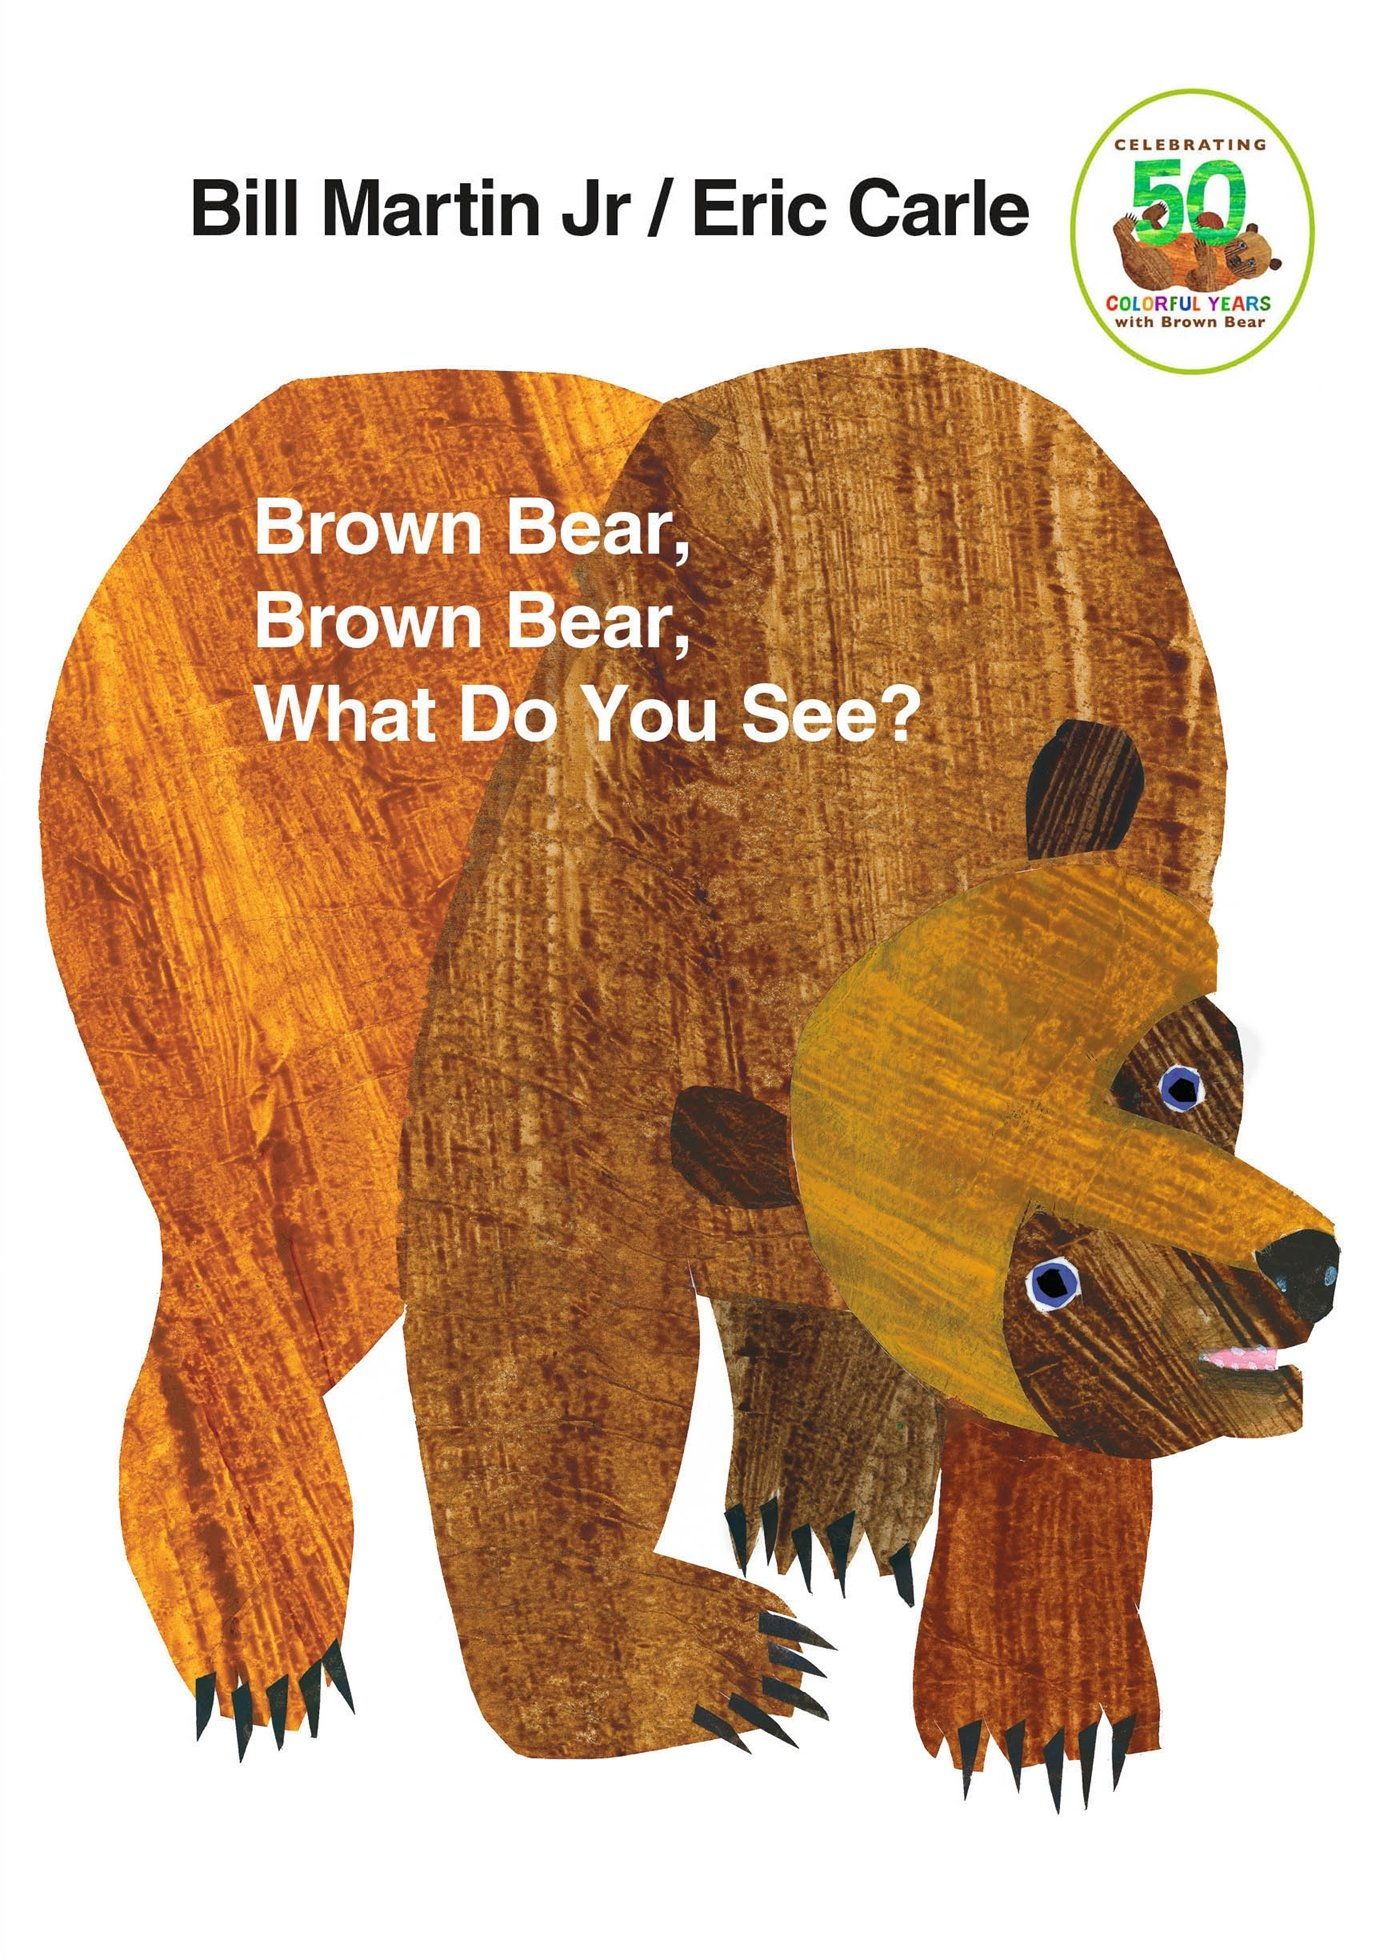 3. 'Brown Bear, Brown Bear, What Do You See?'